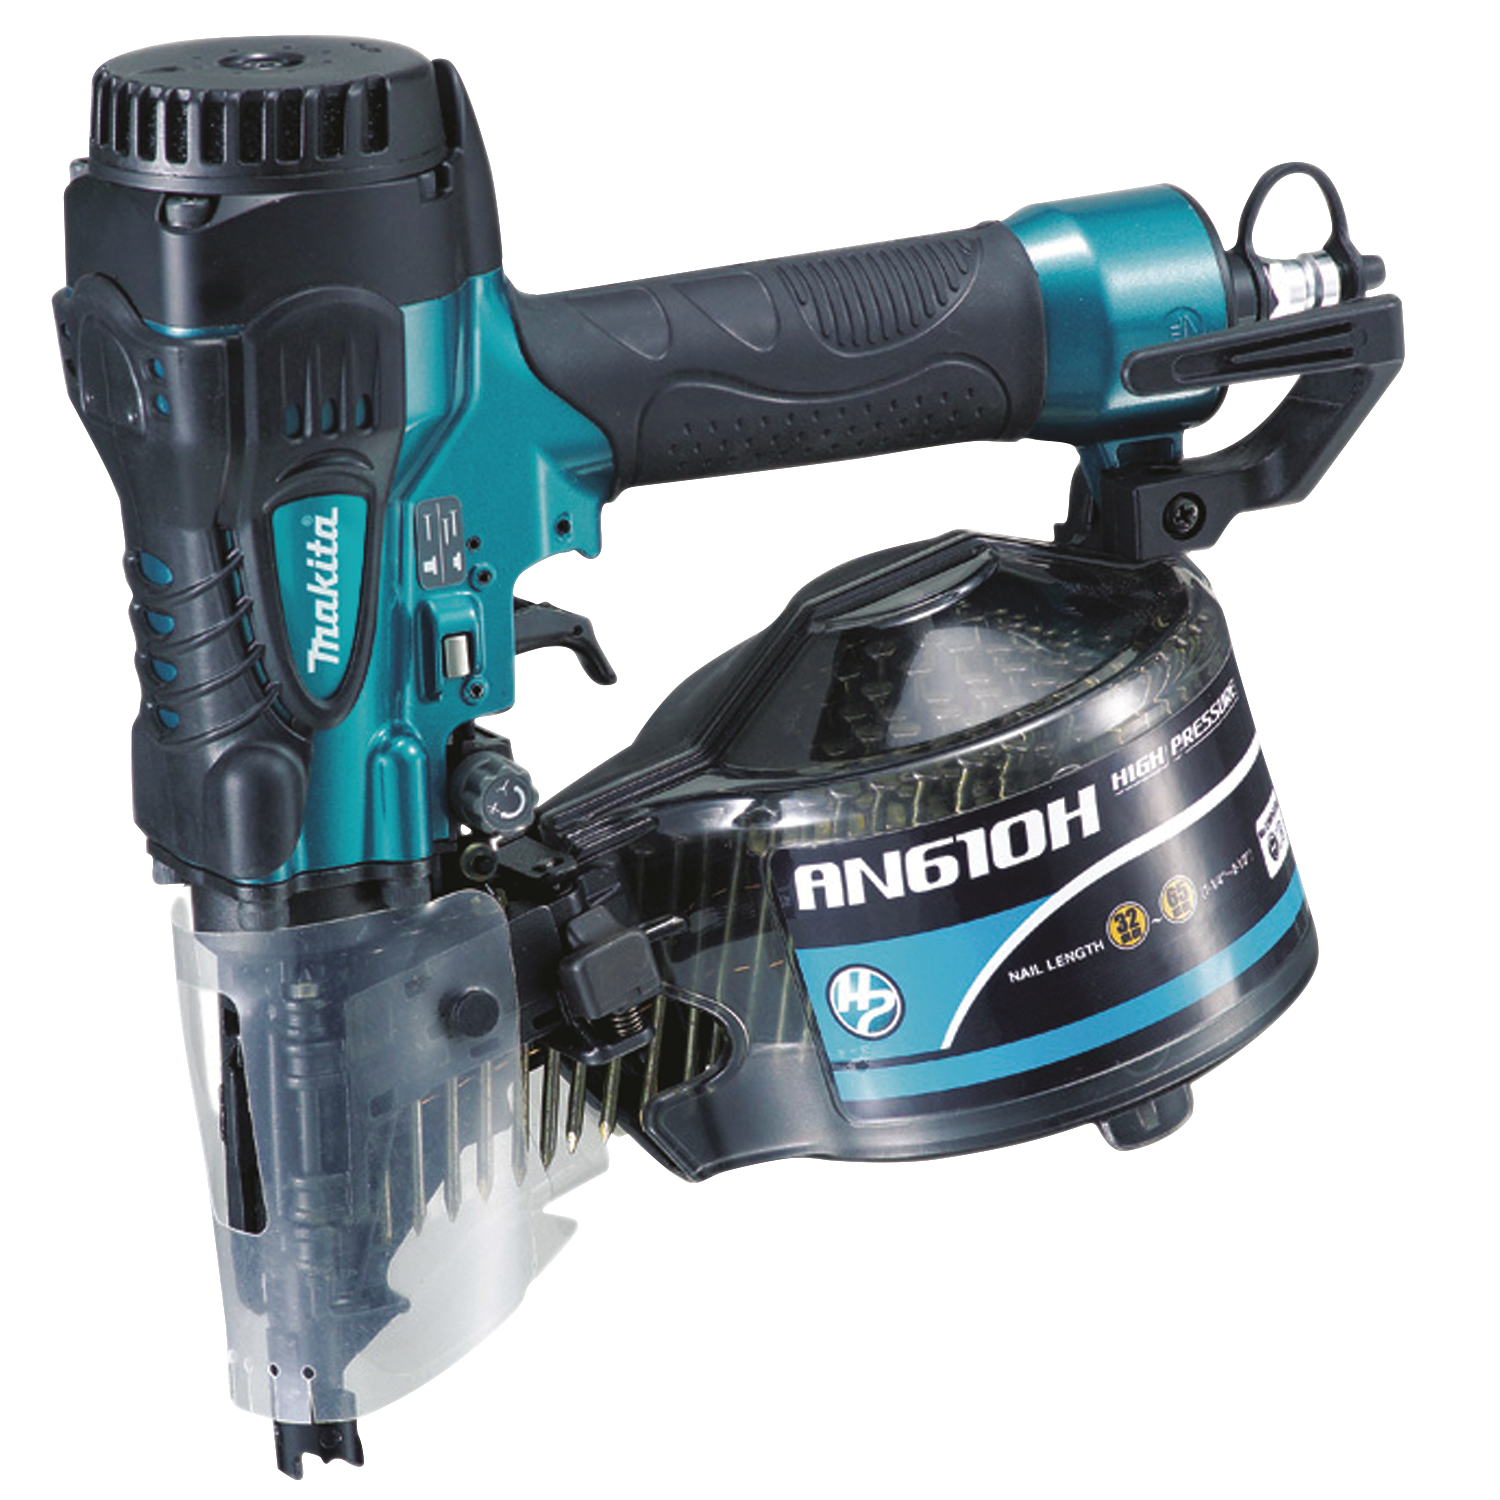 Makita USA - Product Details -AN610H